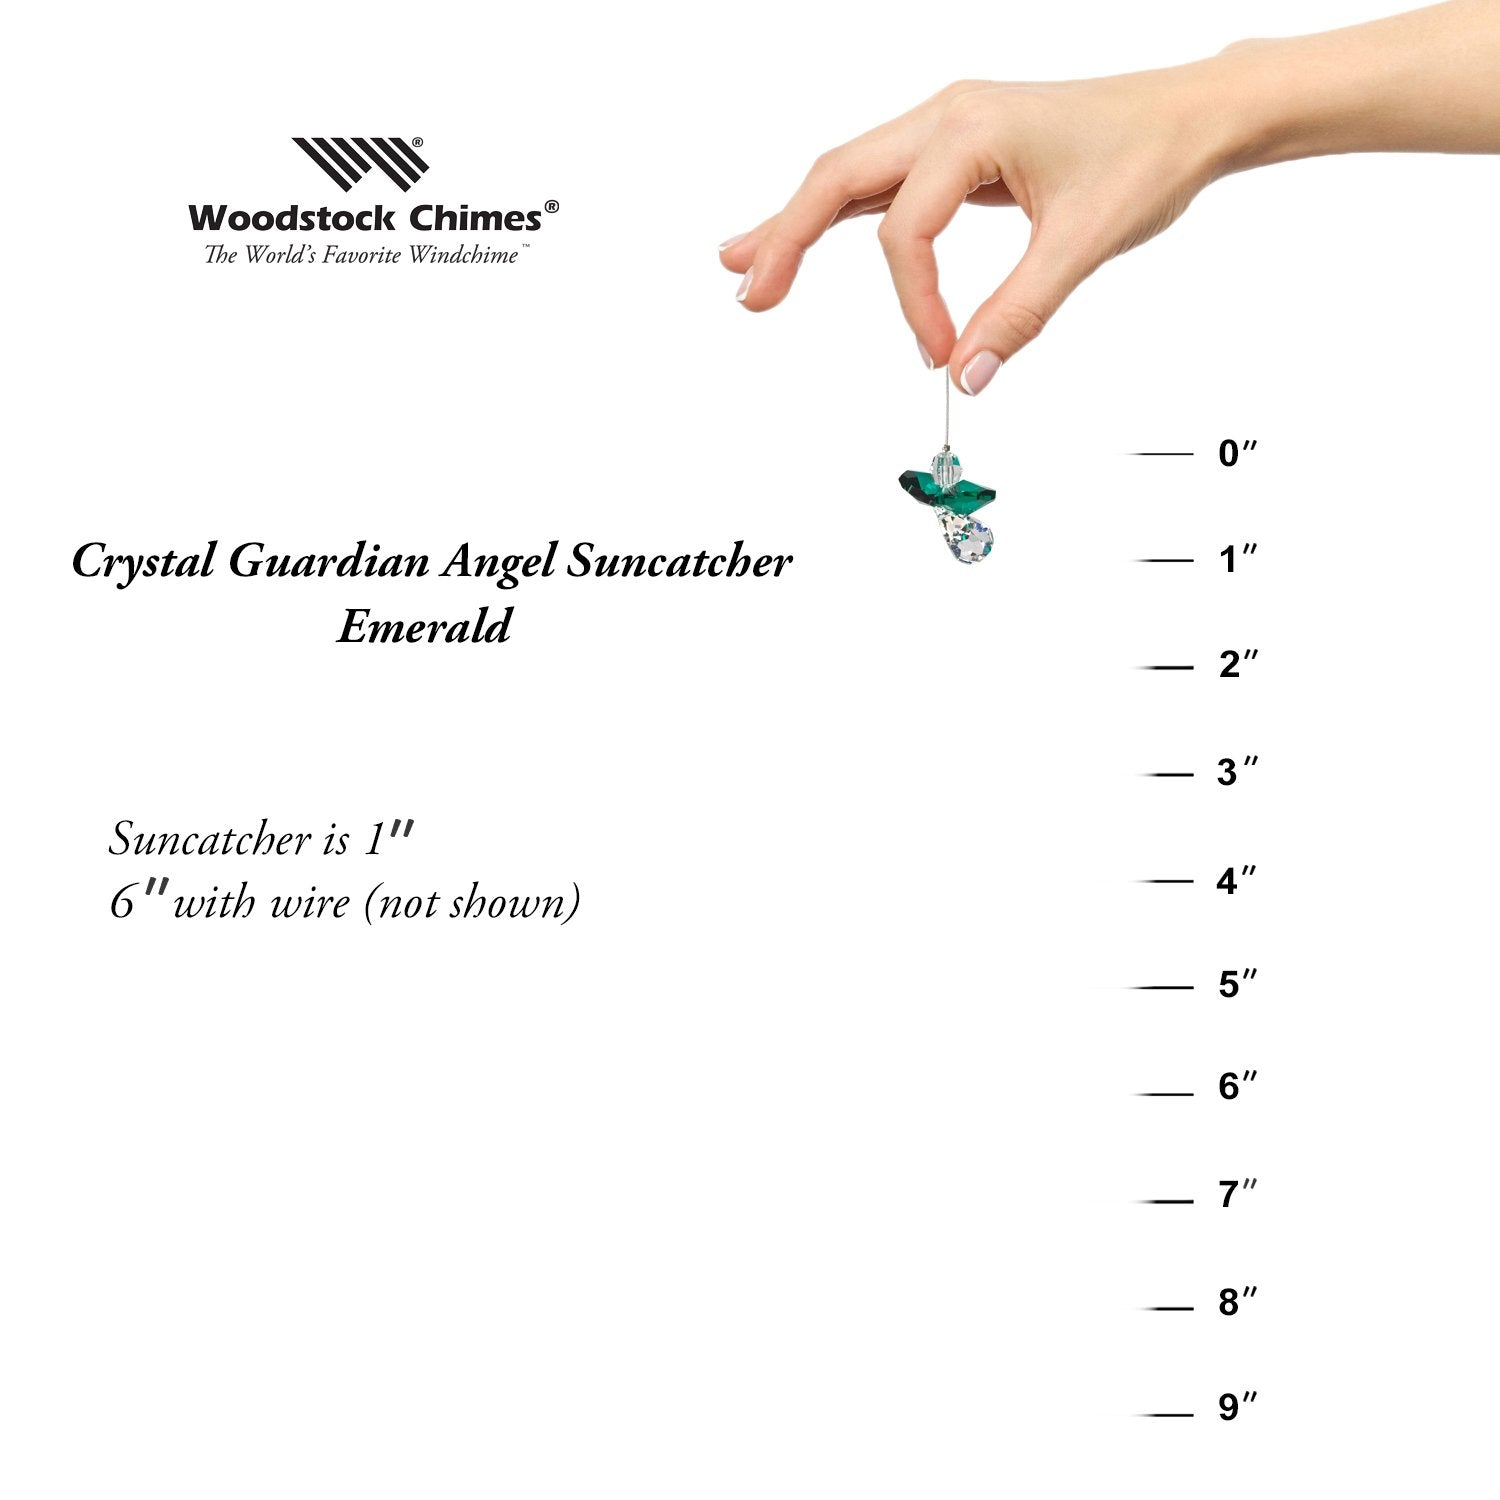 Crystal Guardian Angel Suncatcher - Emerald (May) proportion image